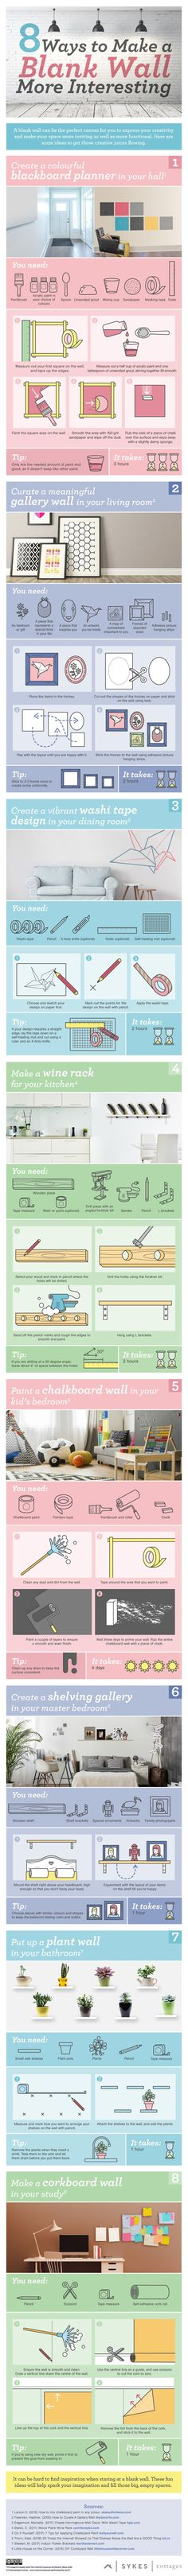 8 Ways to Make a Blank Wall More Interesting #infographic #HomeImprovement